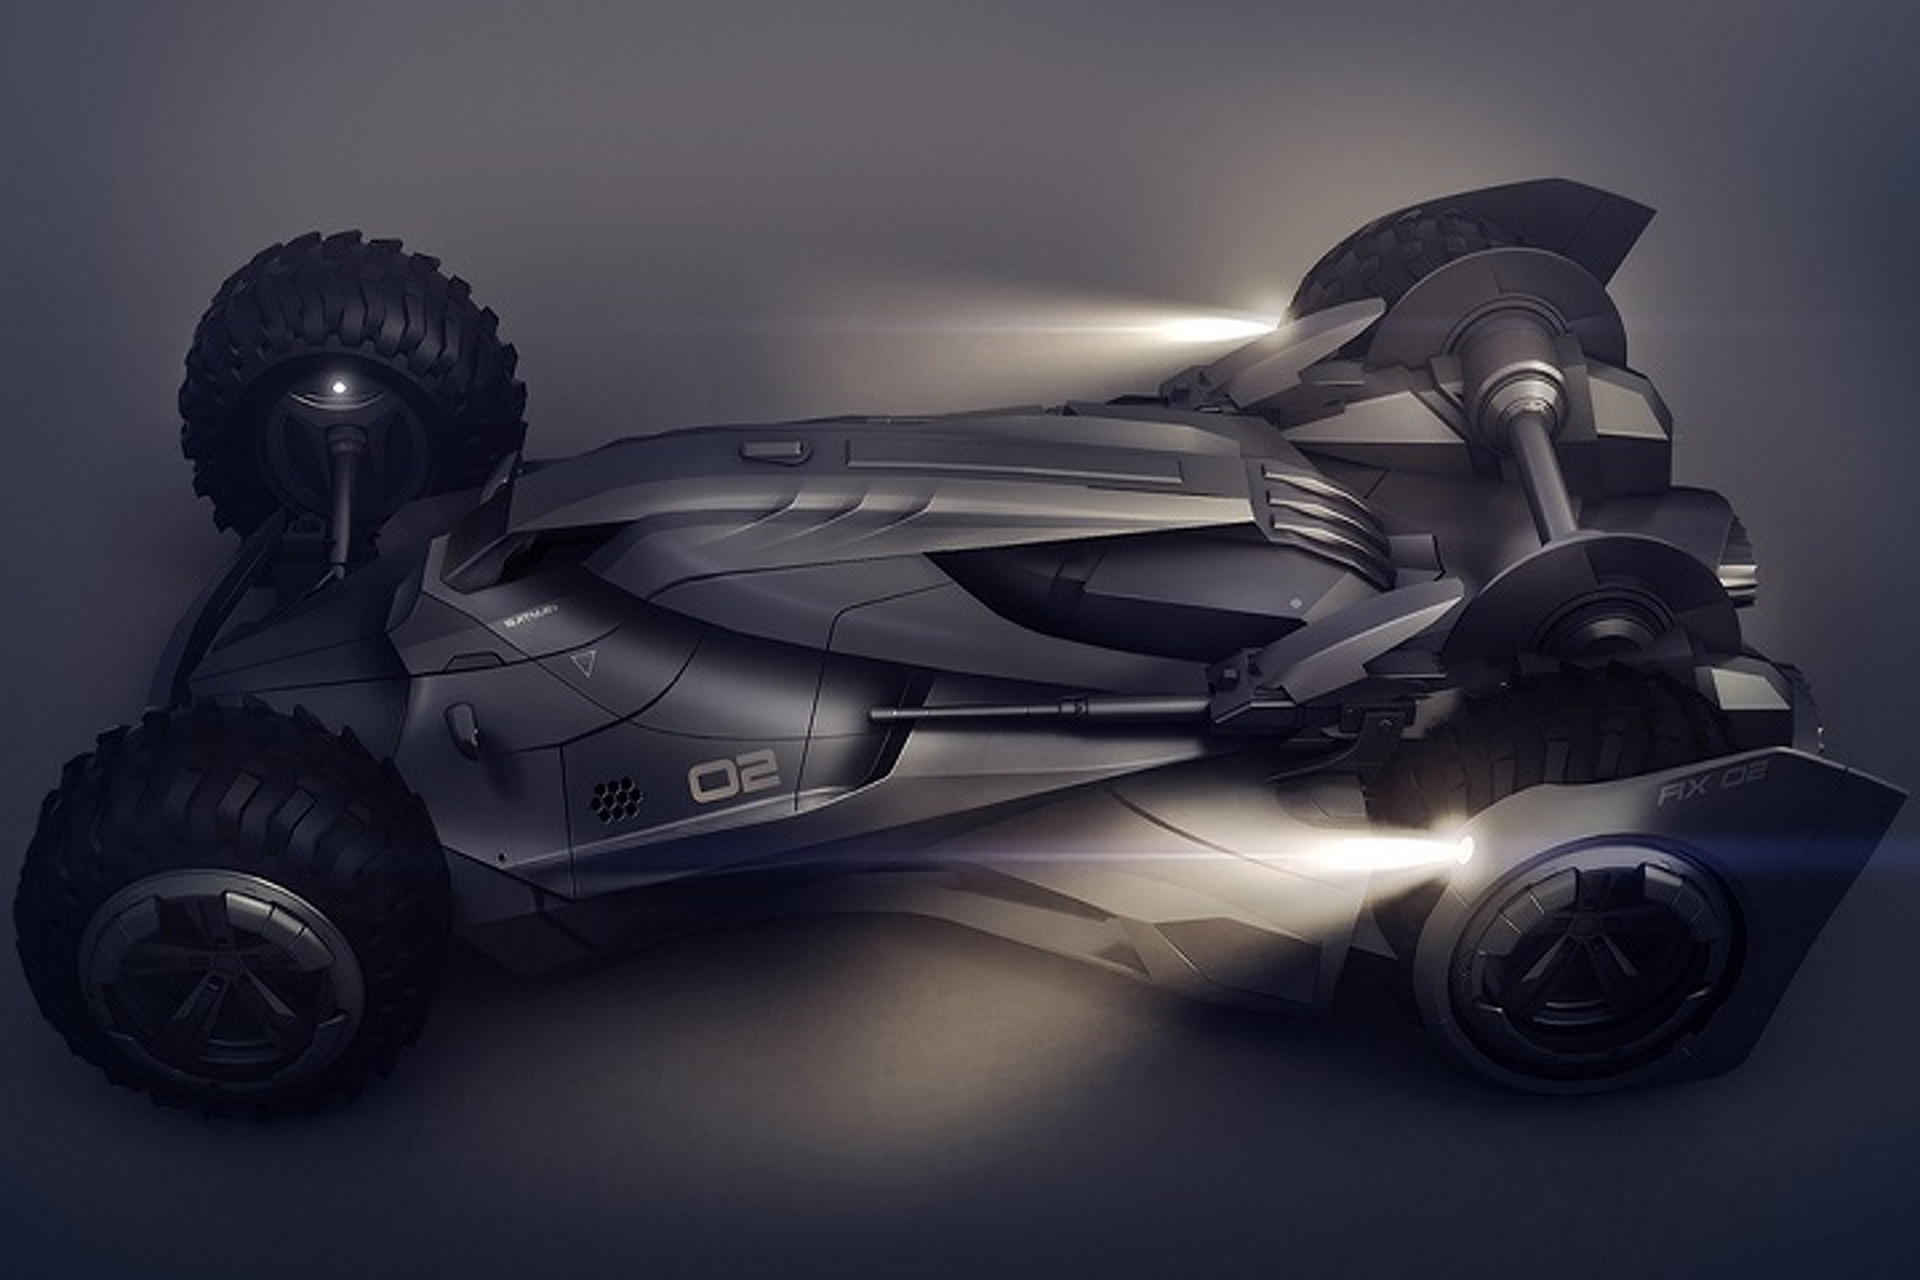 This Amazing Batmobile Concept Might Make Batman Jealous